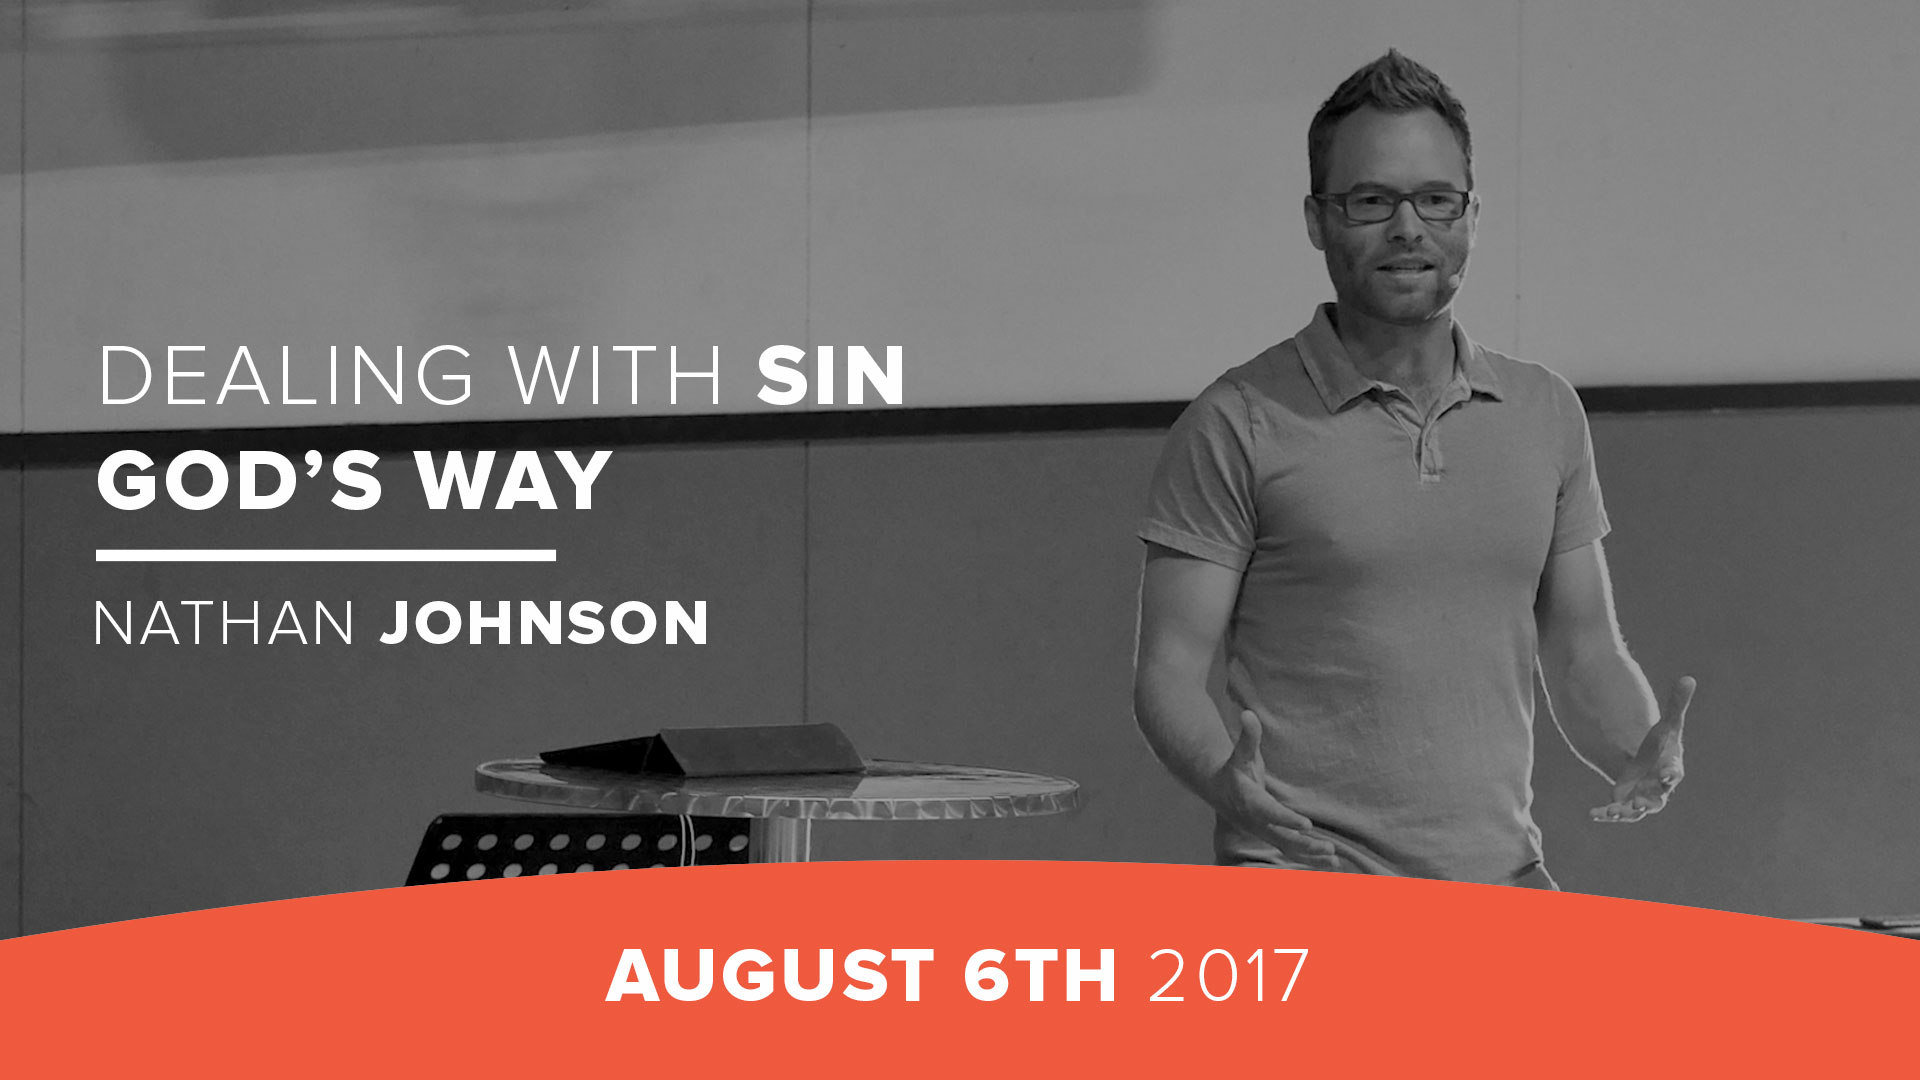 Dealing with sin God's way